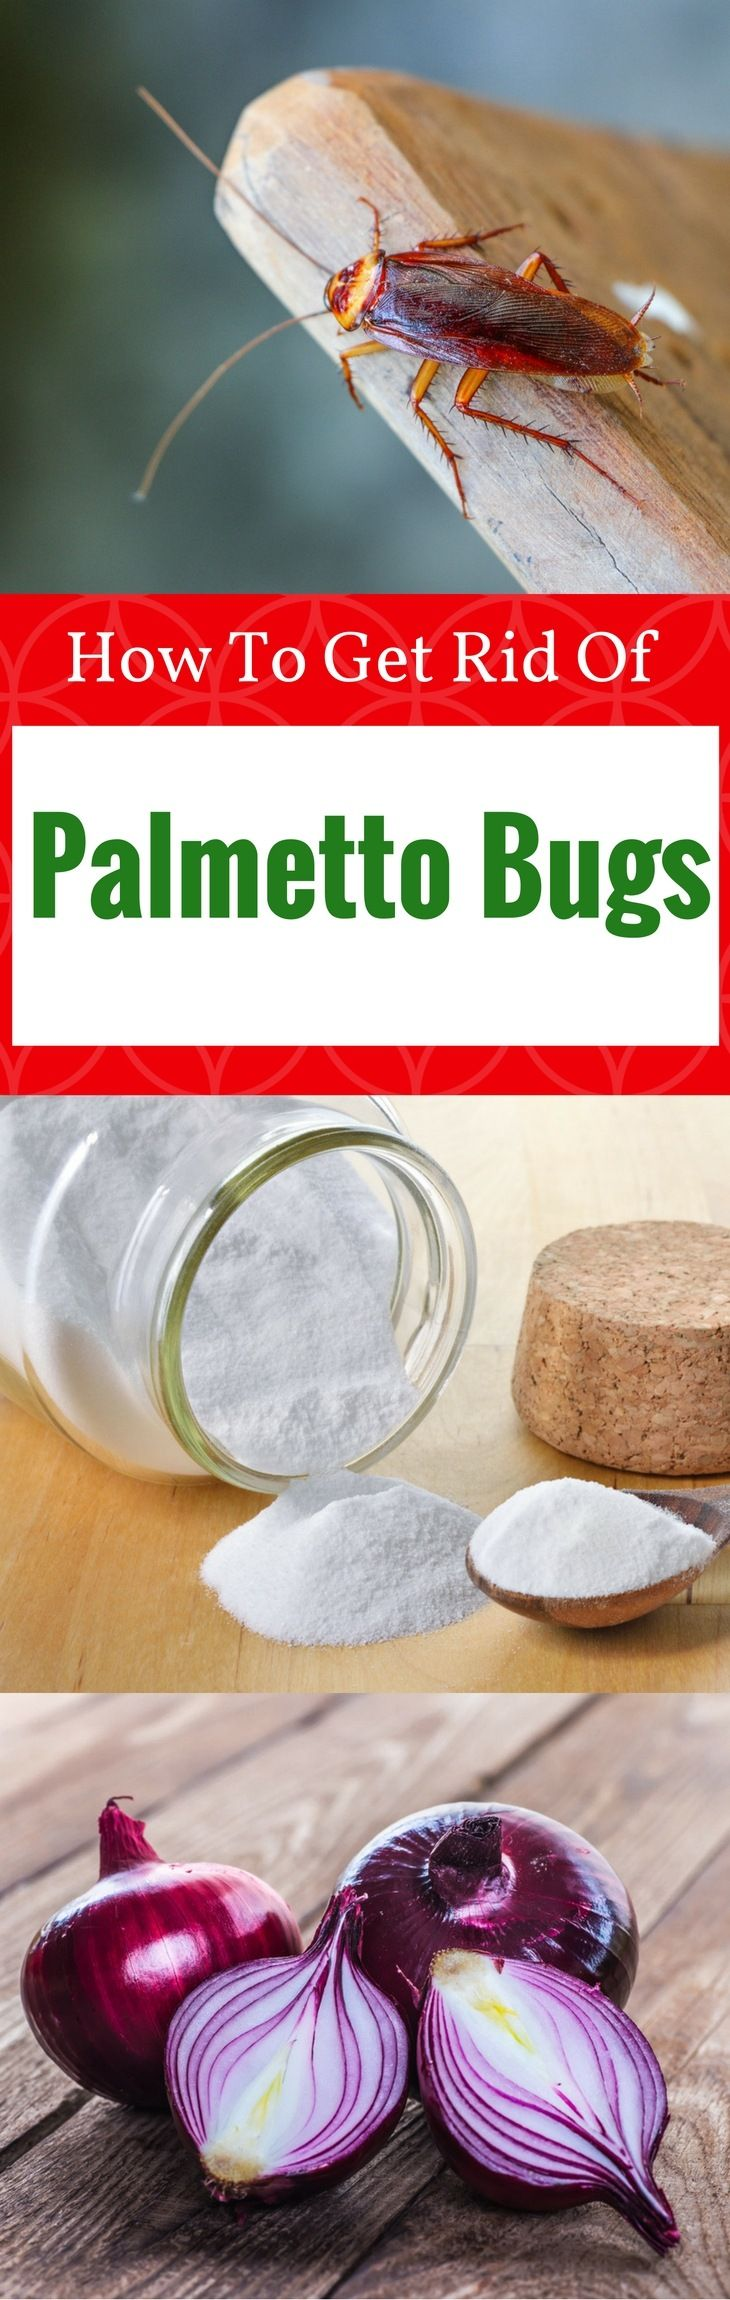 How to get rid of palmetto bugs naturally 10 best ways in